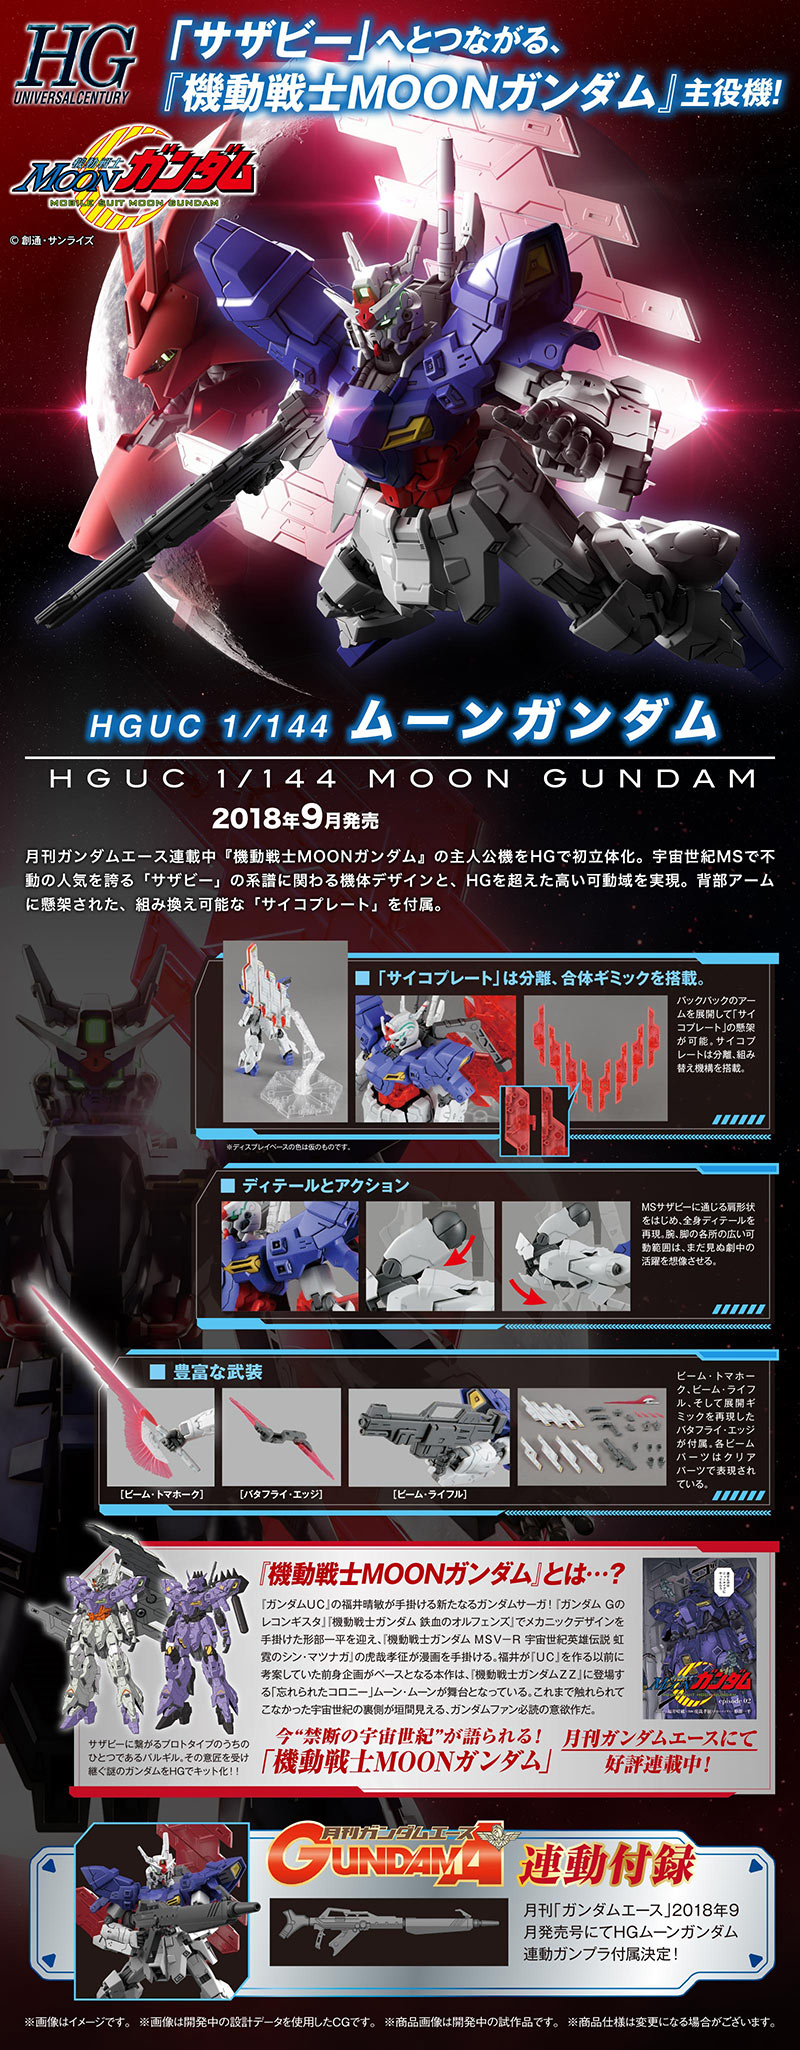 HGUC Moon Gundam Description